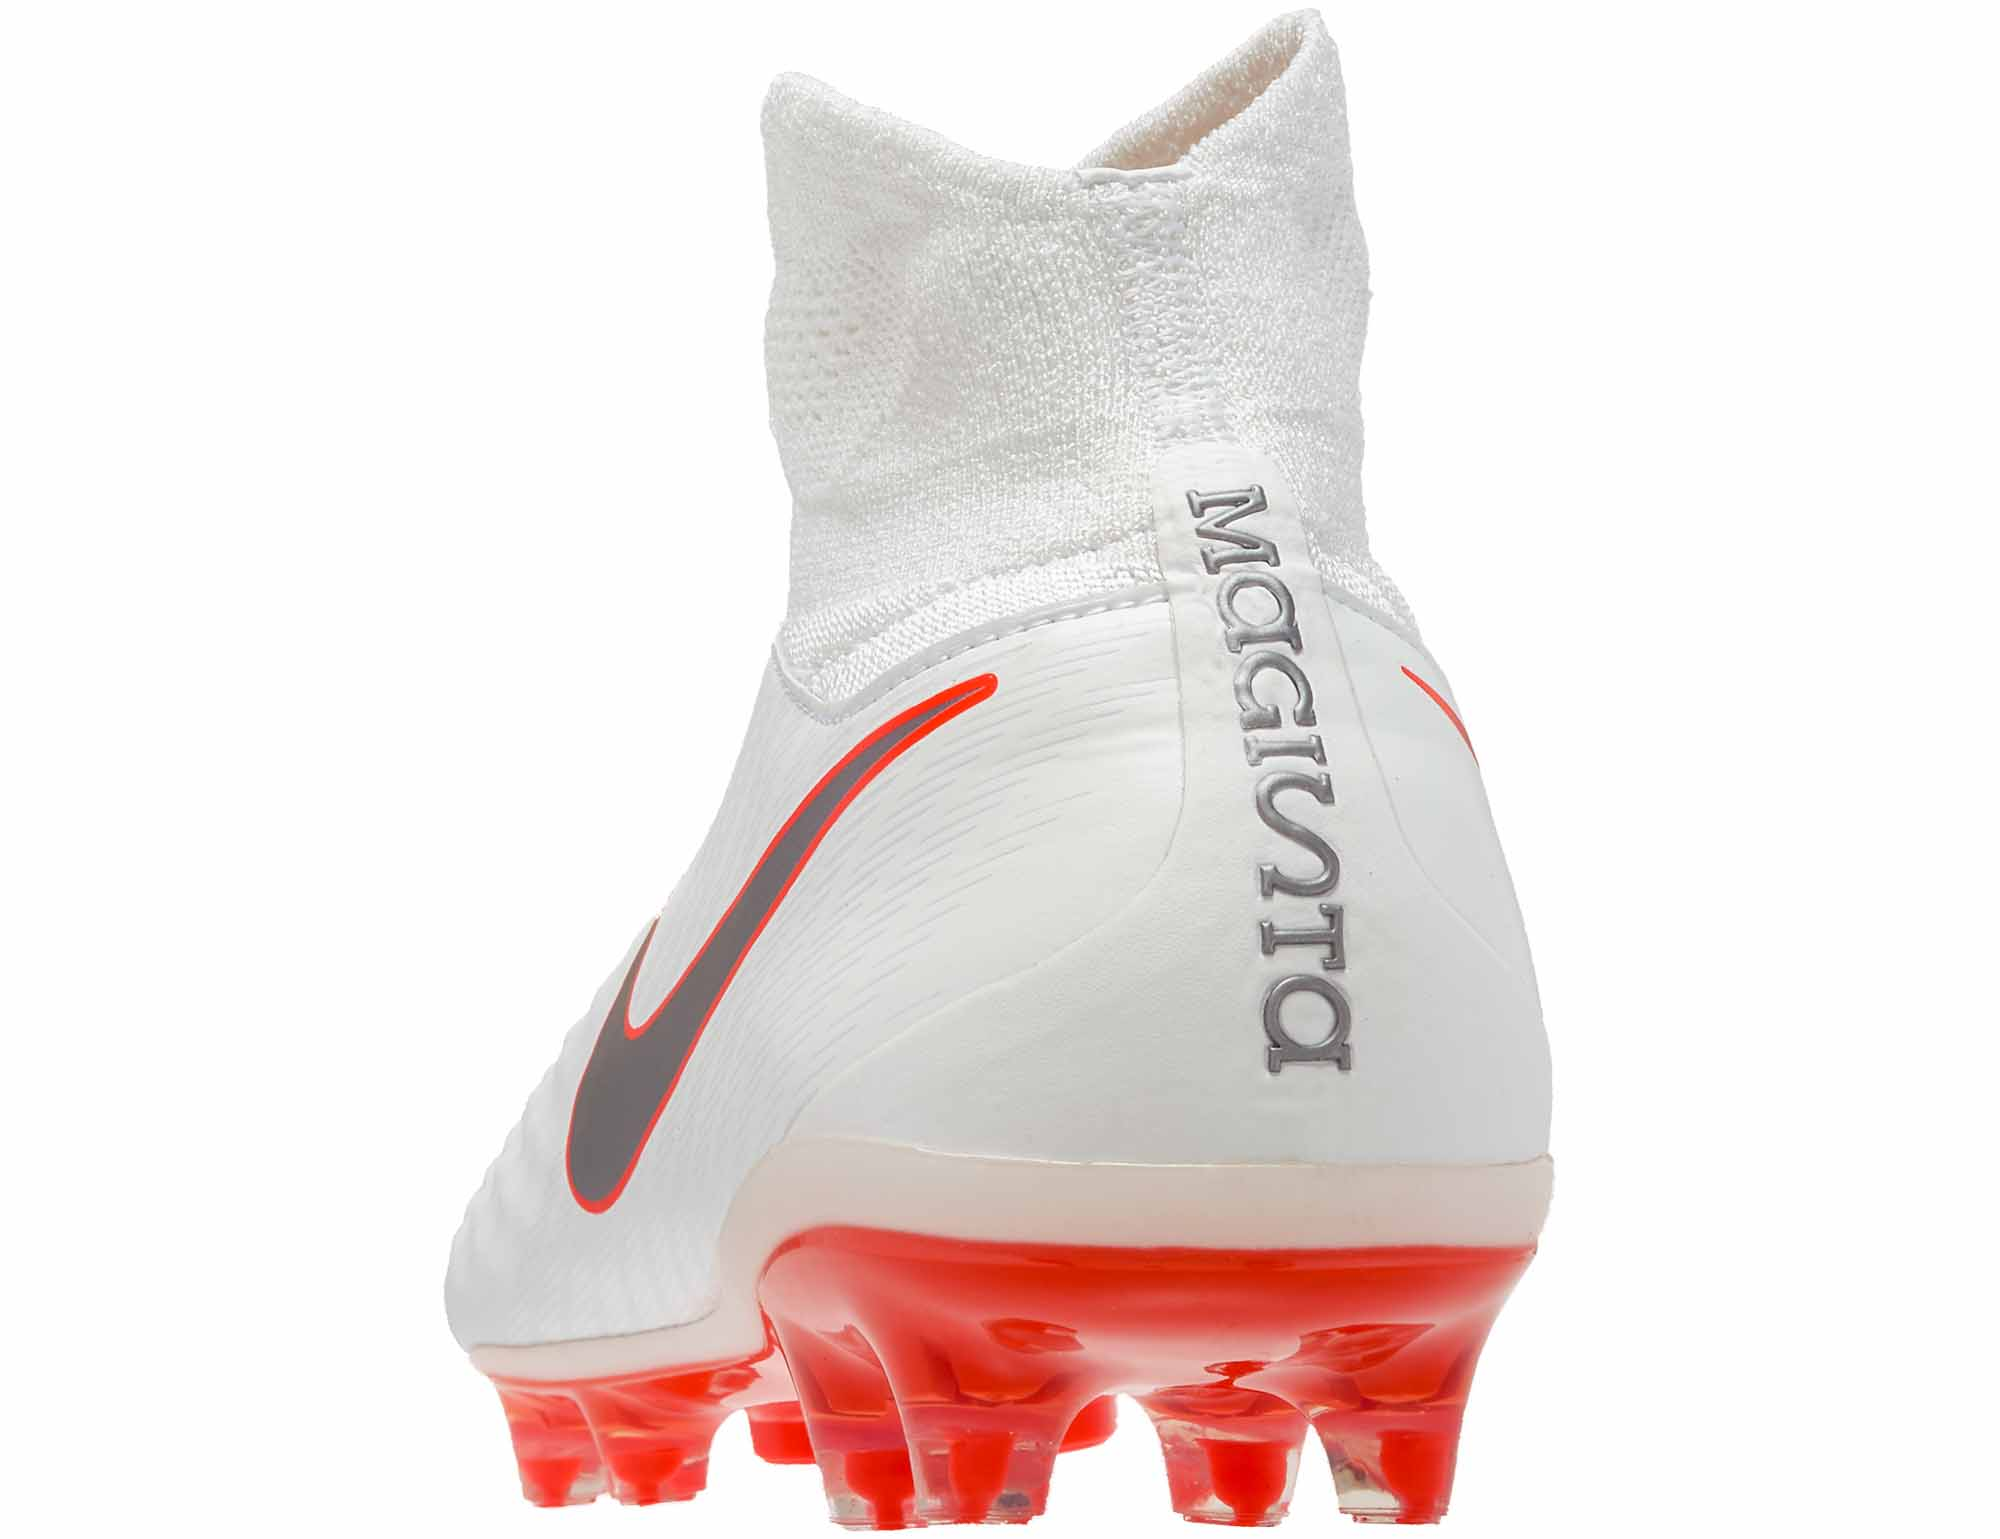 f9d3ad900e53 Nike Magista Obra II Pro DF FG - White   Metallic Cool Grey - Soccer ...